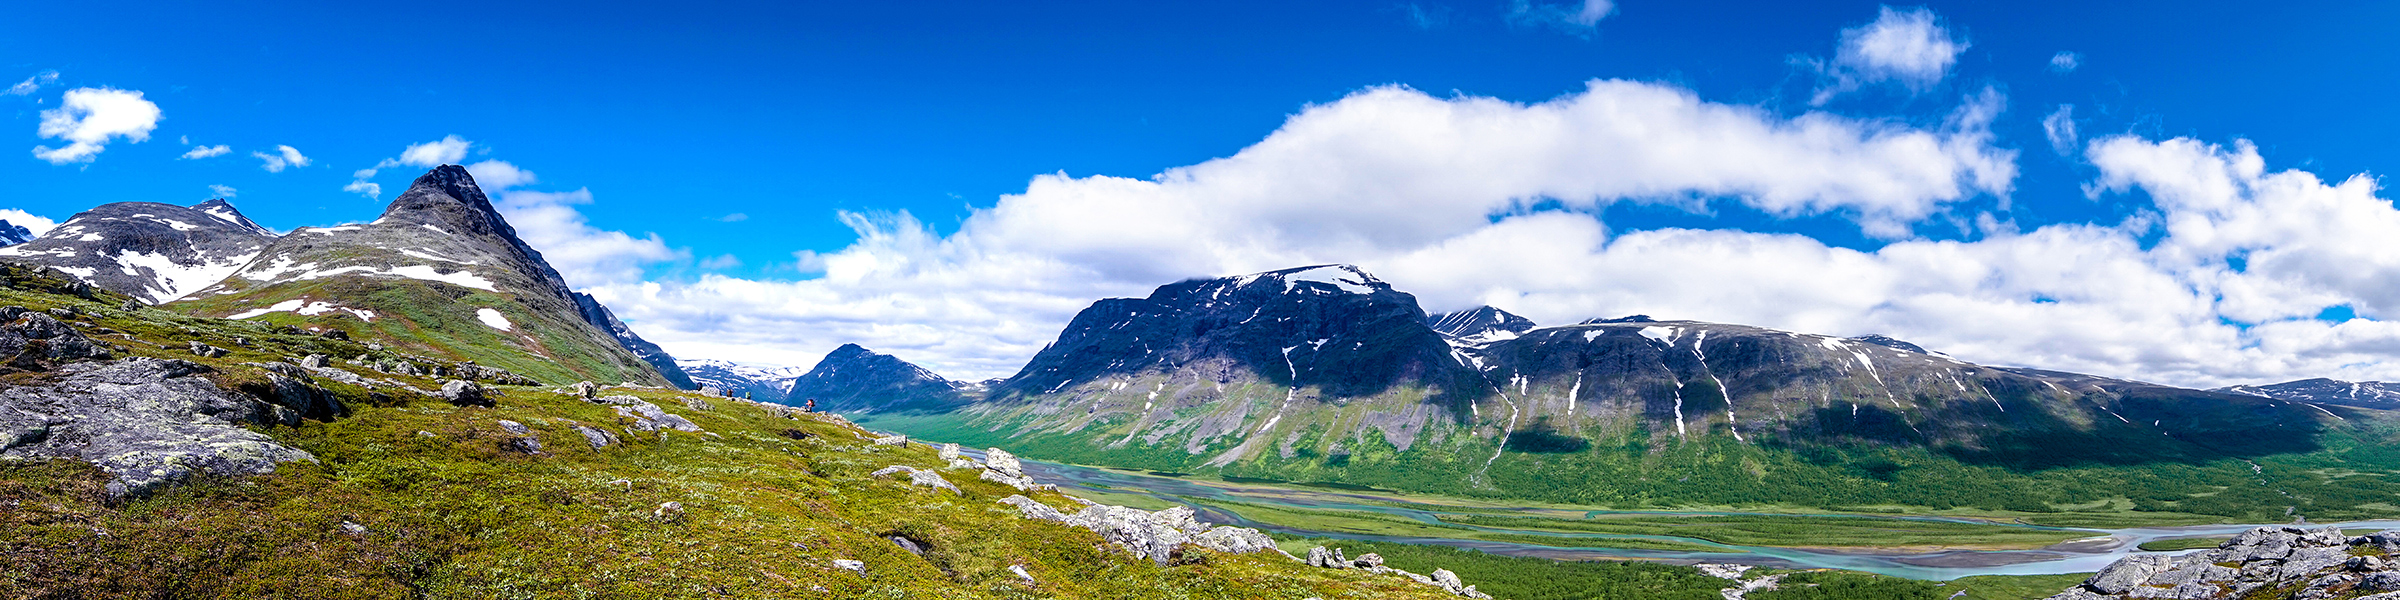 Sweden Sarek National Park